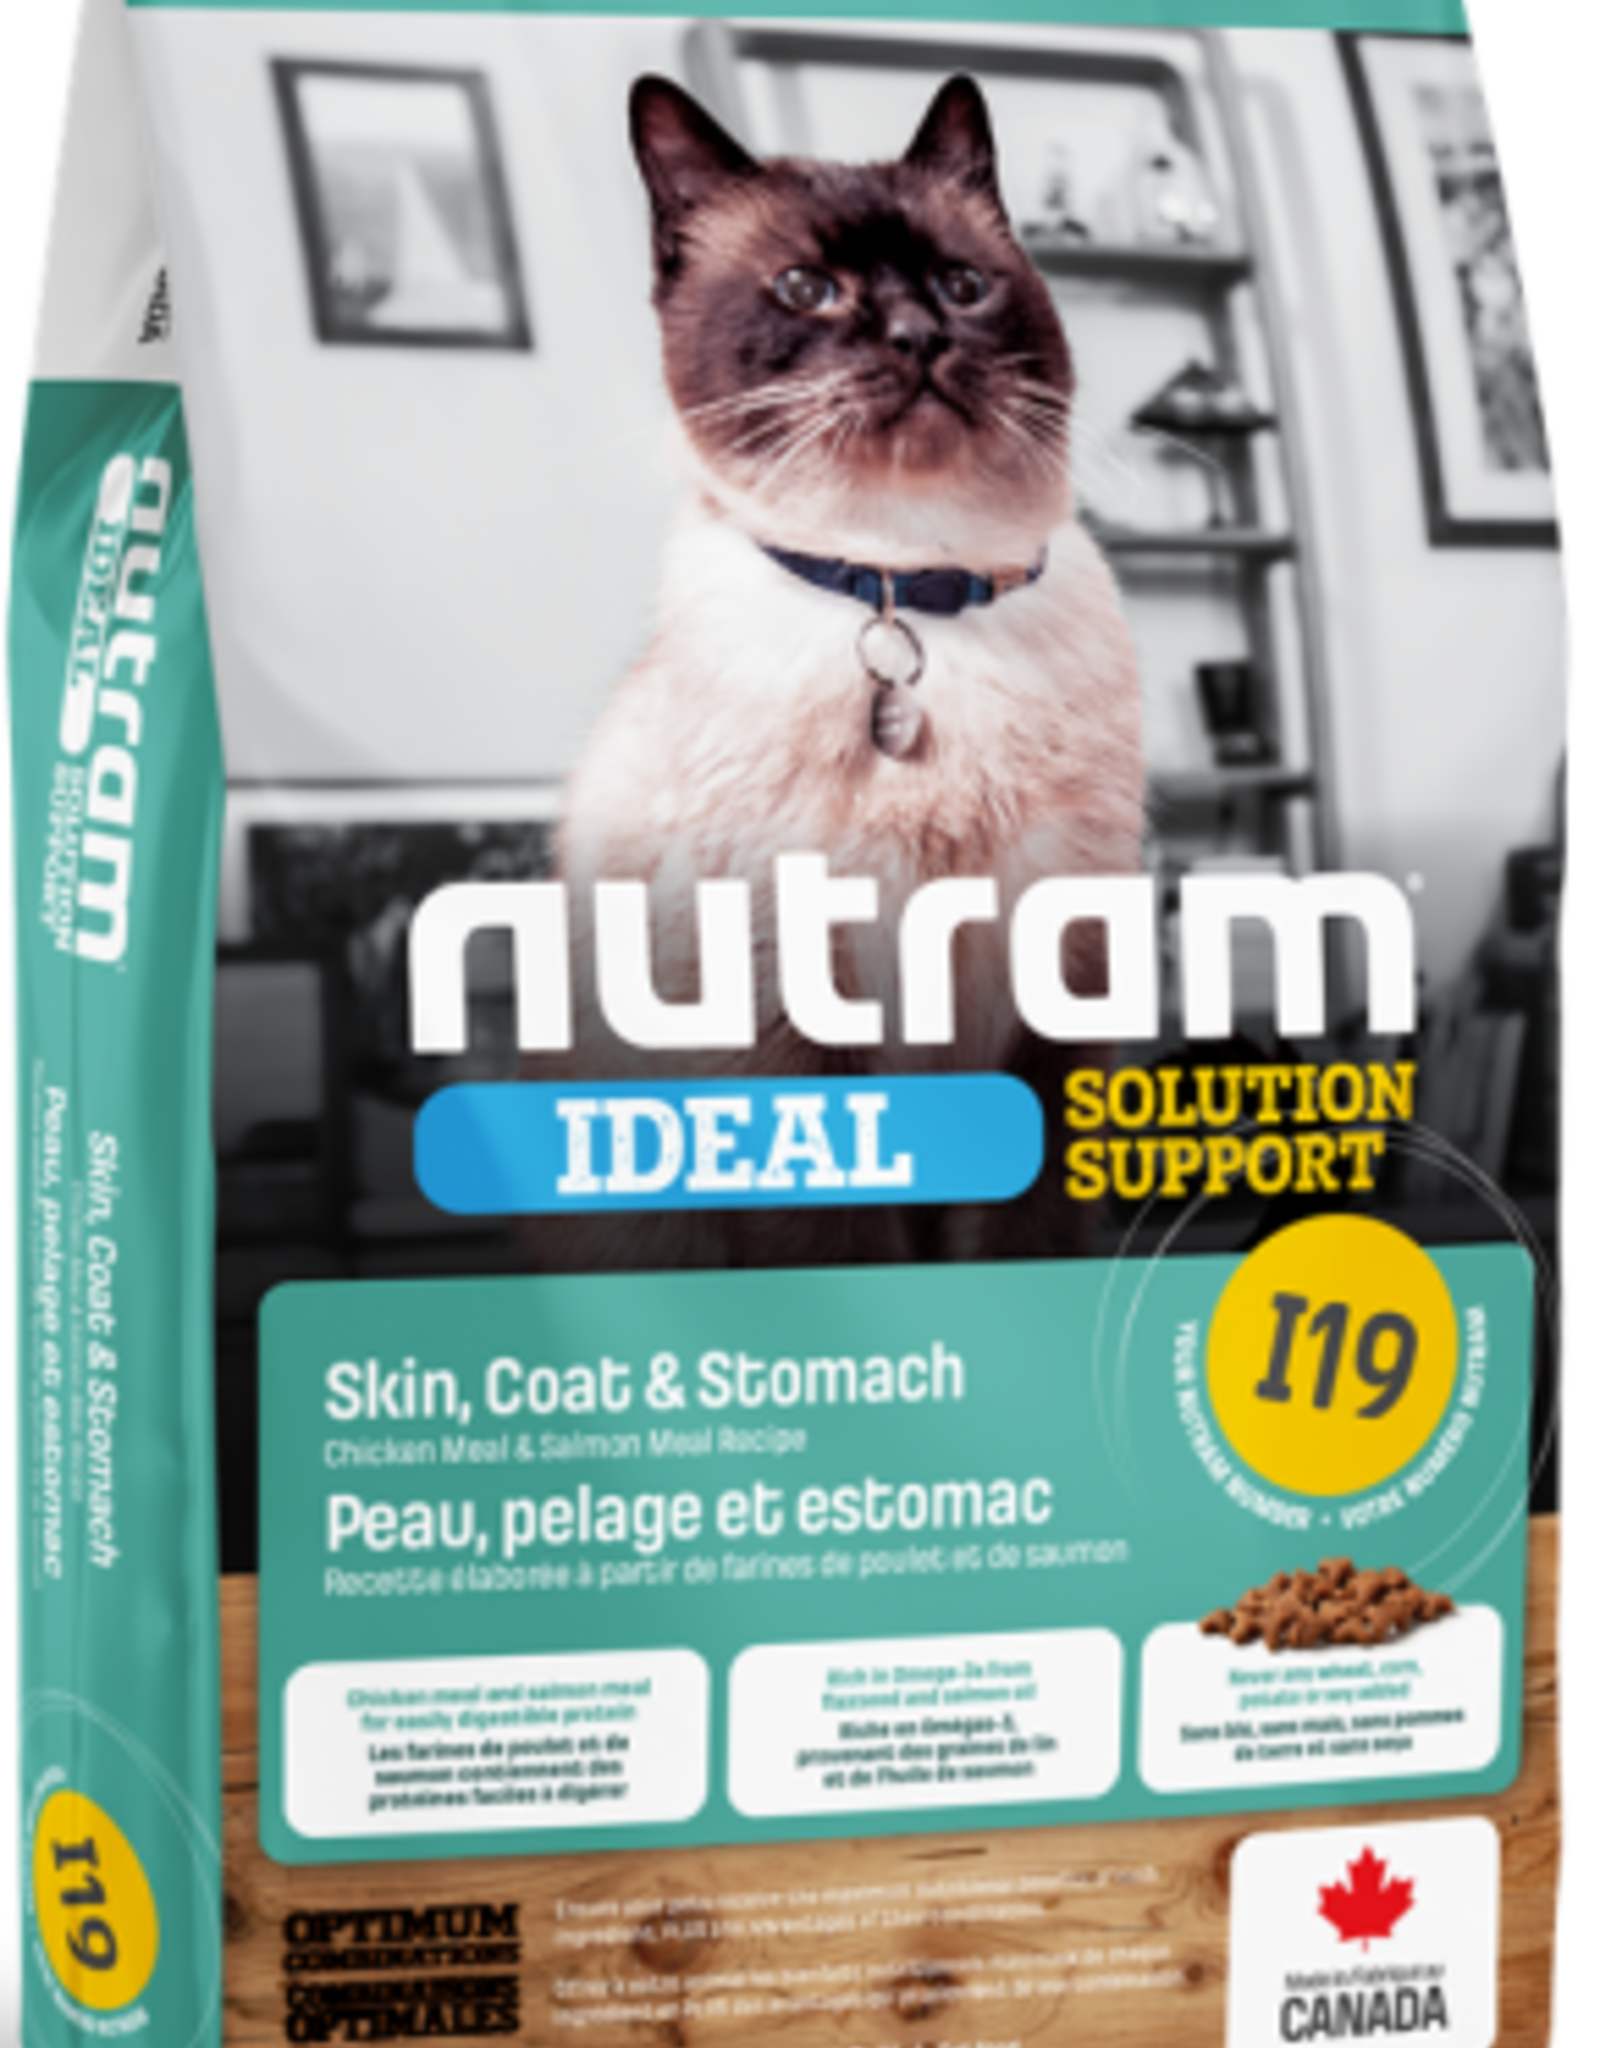 Nutram Nutram I19 Cat  Skin, Coat and Stomach 12 L B